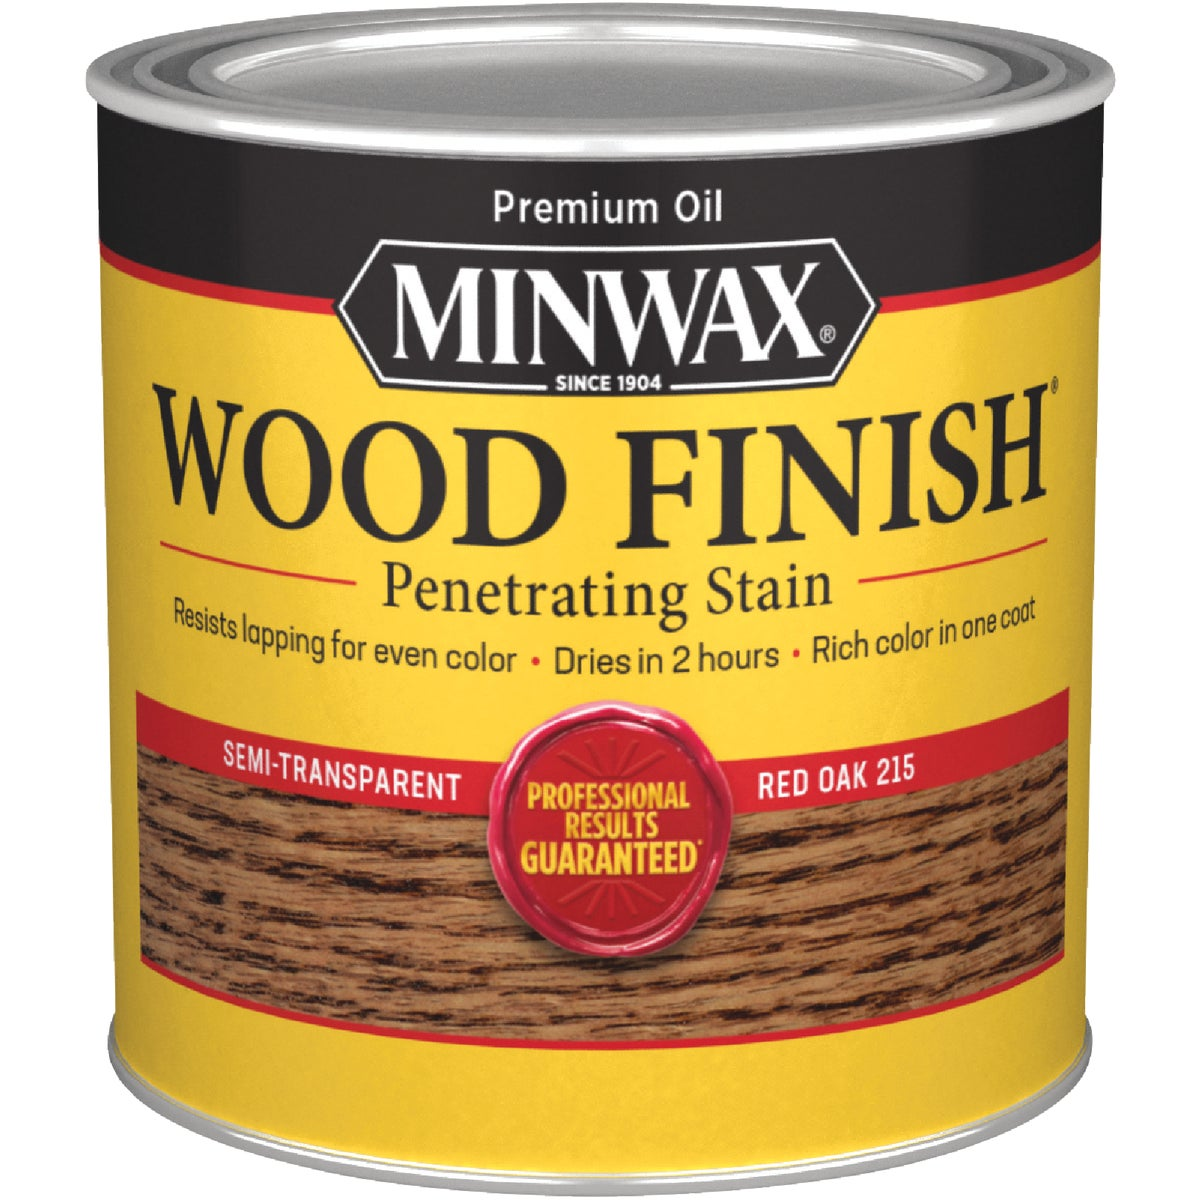 RED OAK WOOD STAIN - 221504444 by Minwax Company